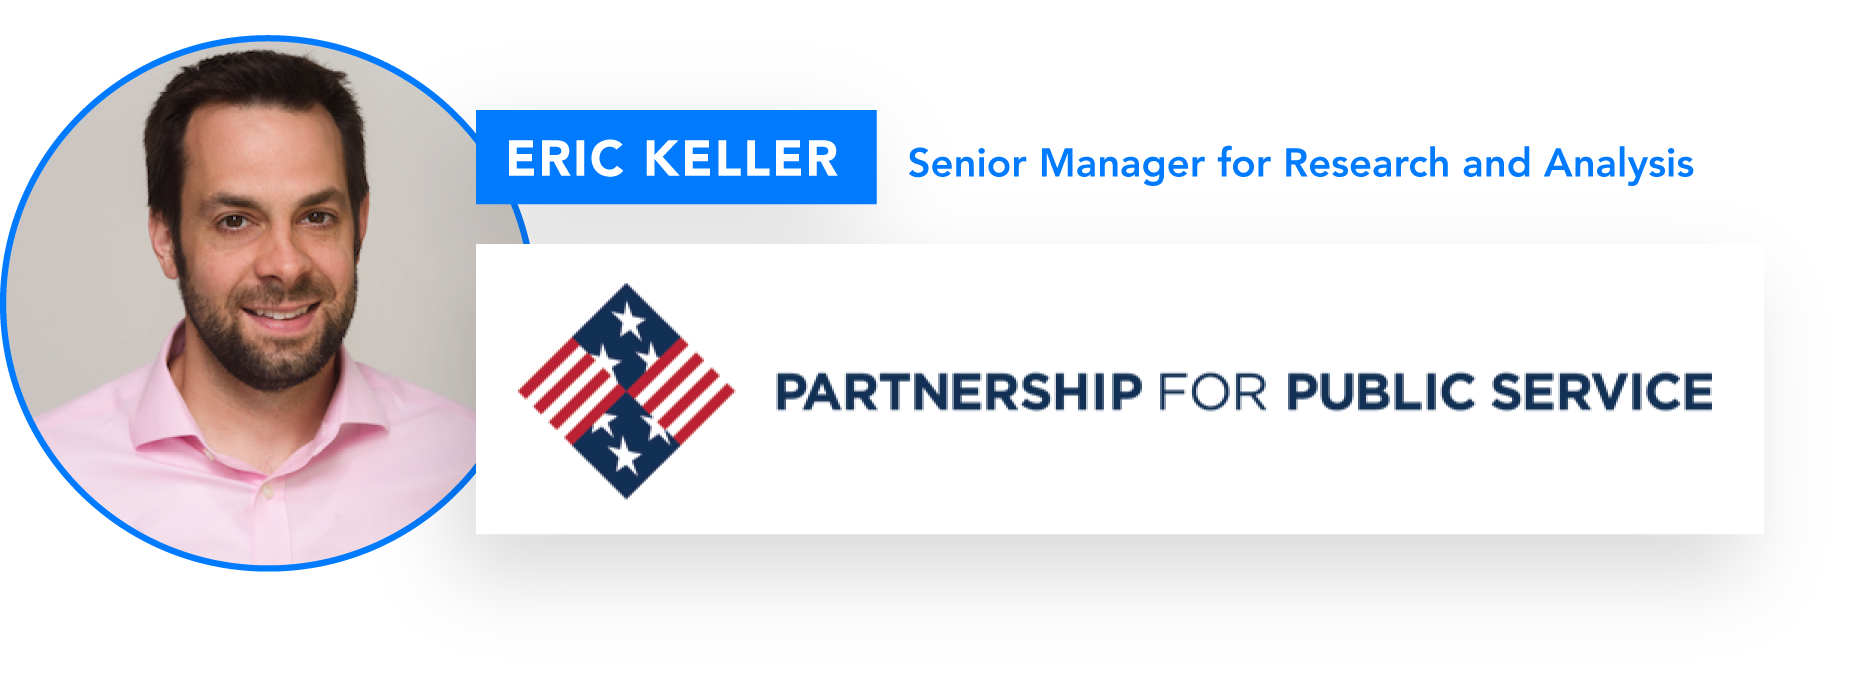 Photo of Eric Keller and Partnership for Public Service logo